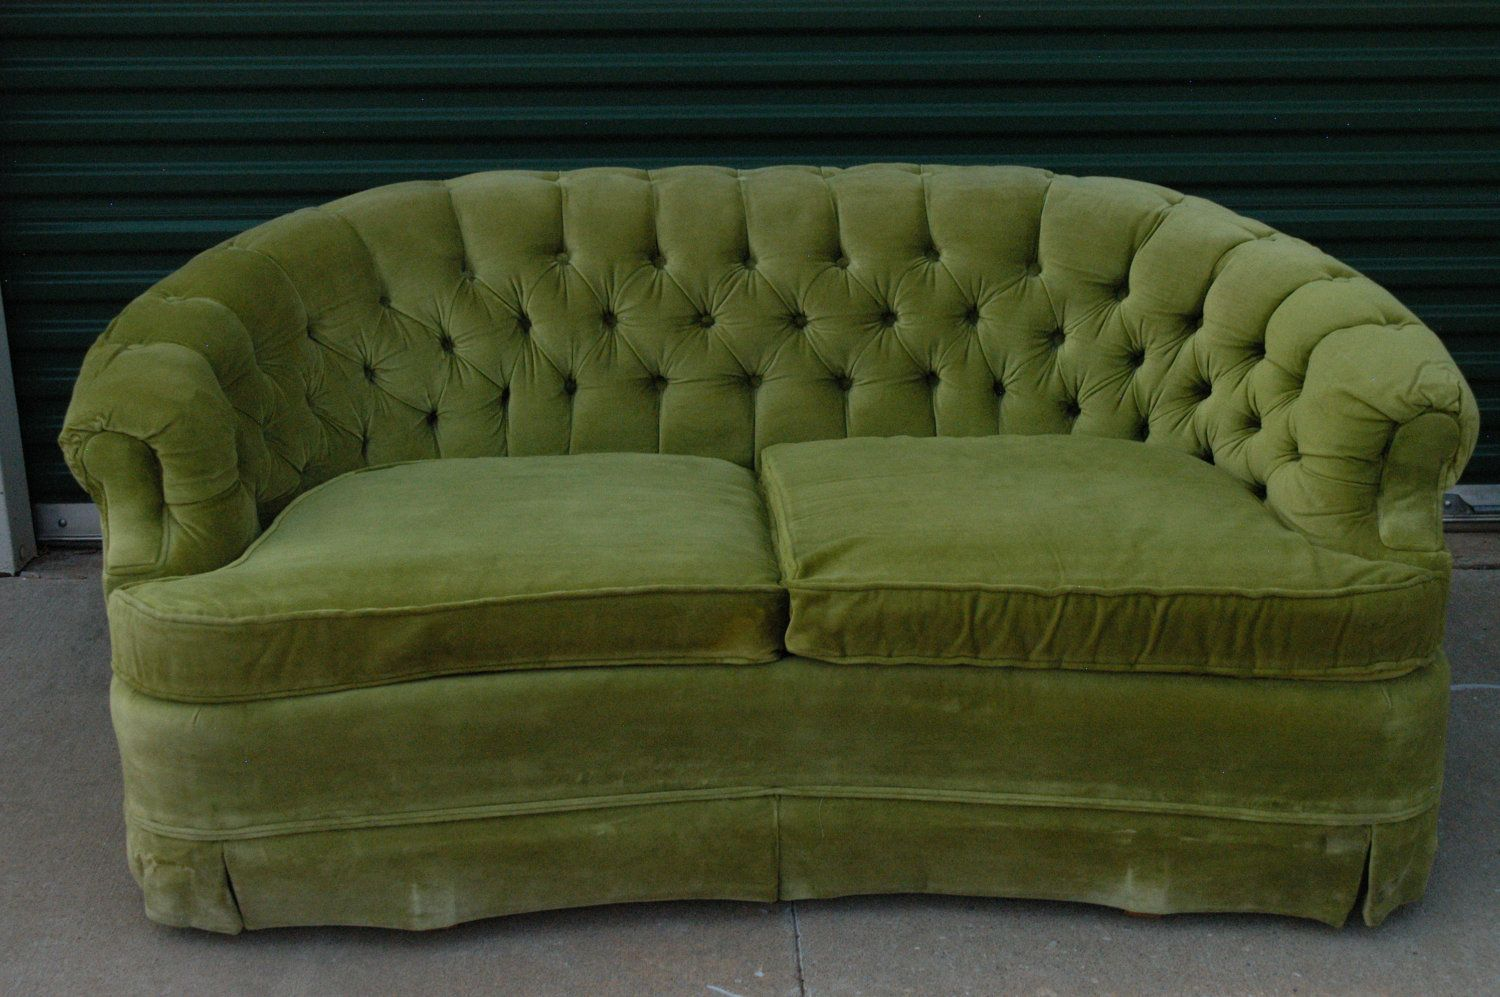 Awesome Contemporary Settee Loveseat For Your Living Room Design Machost Co Dining Chair Design Ideas Machostcouk